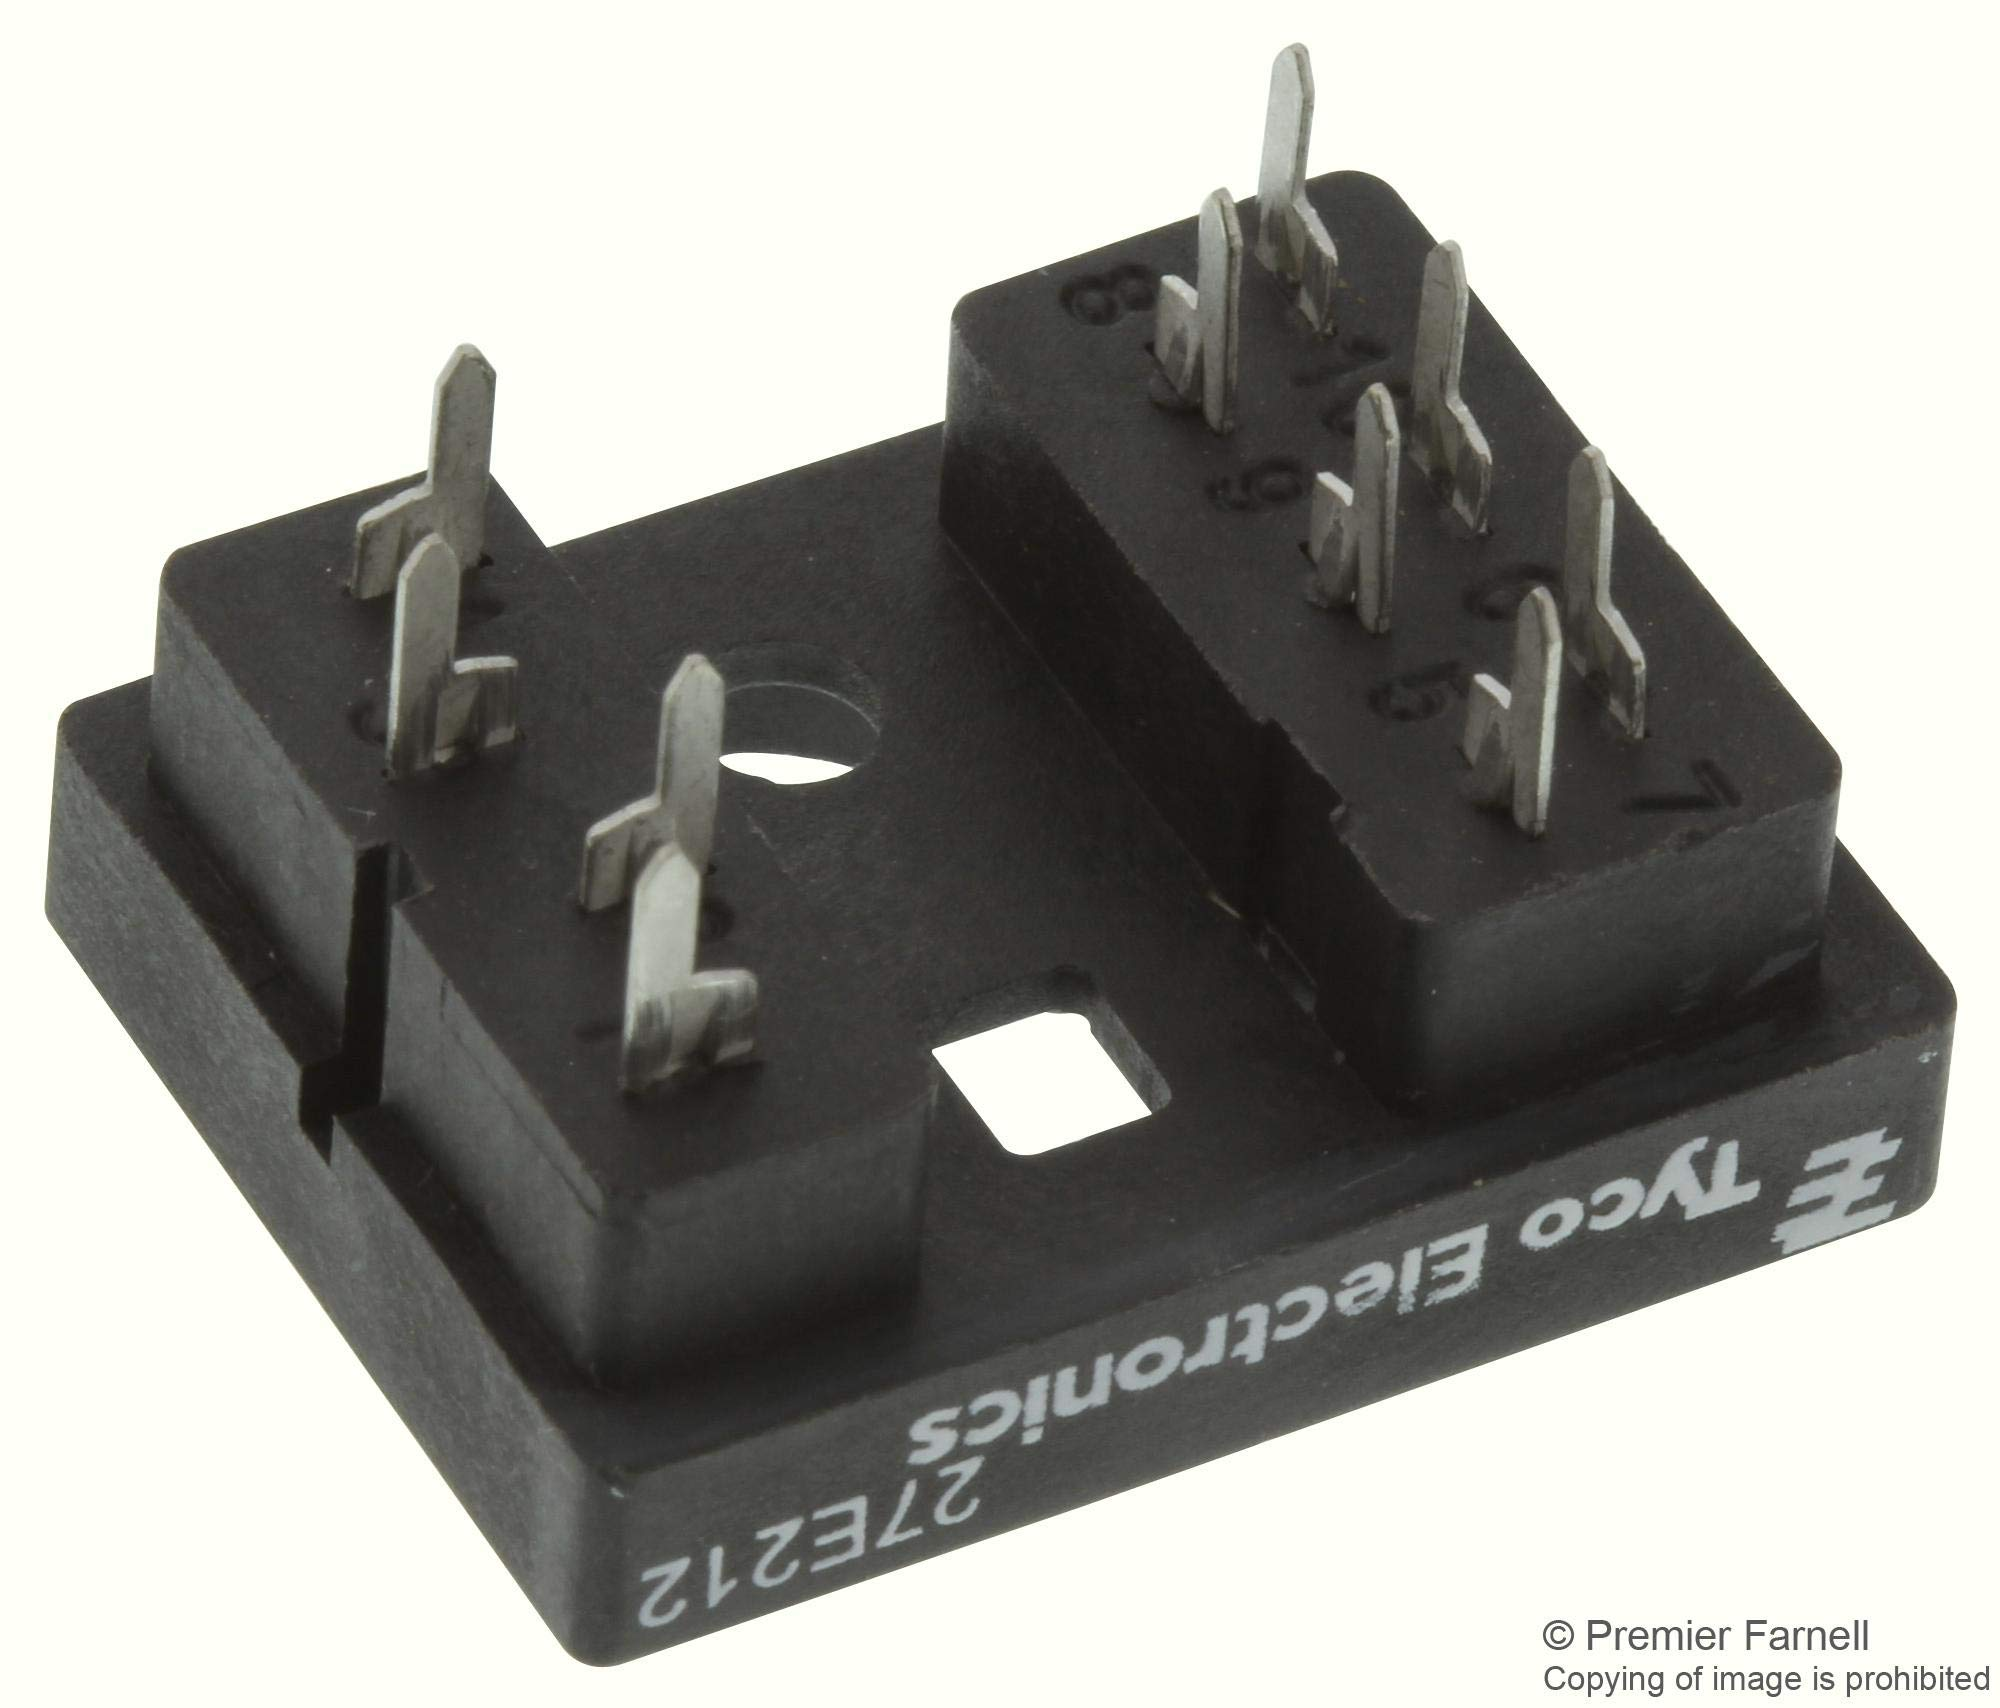 27E212 - Relay Socket, Through Hole, 10 Pins, 10 A (Pack of 20) -2.7E+213